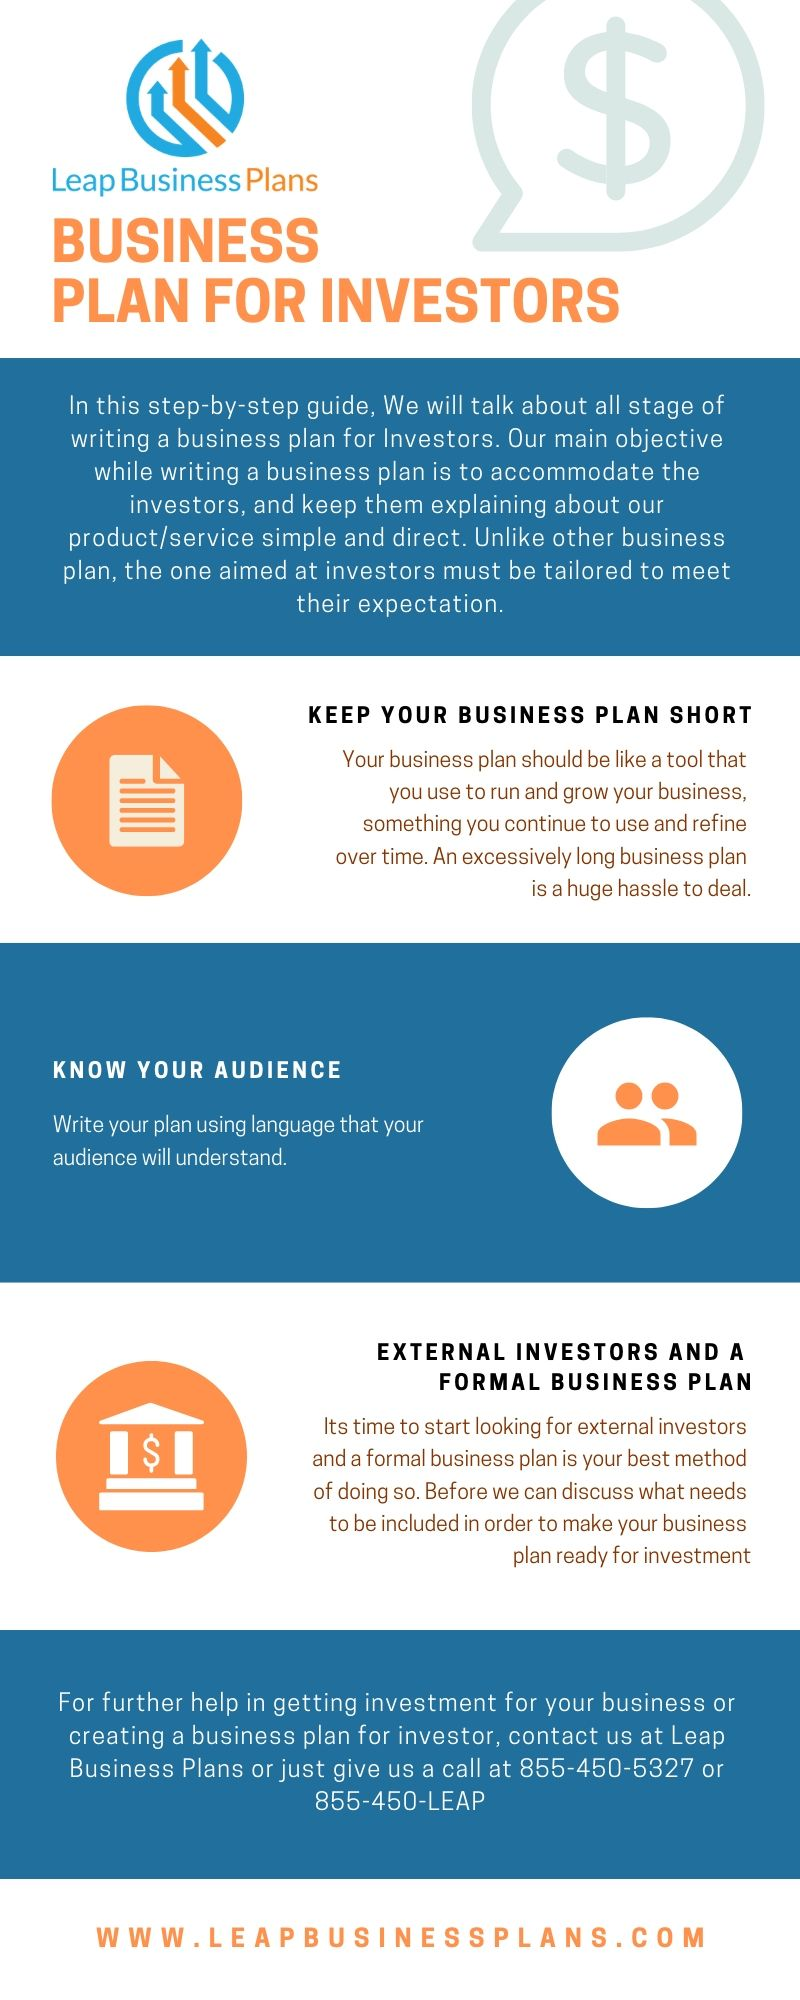 Business Plan for Investors Business investors, Business